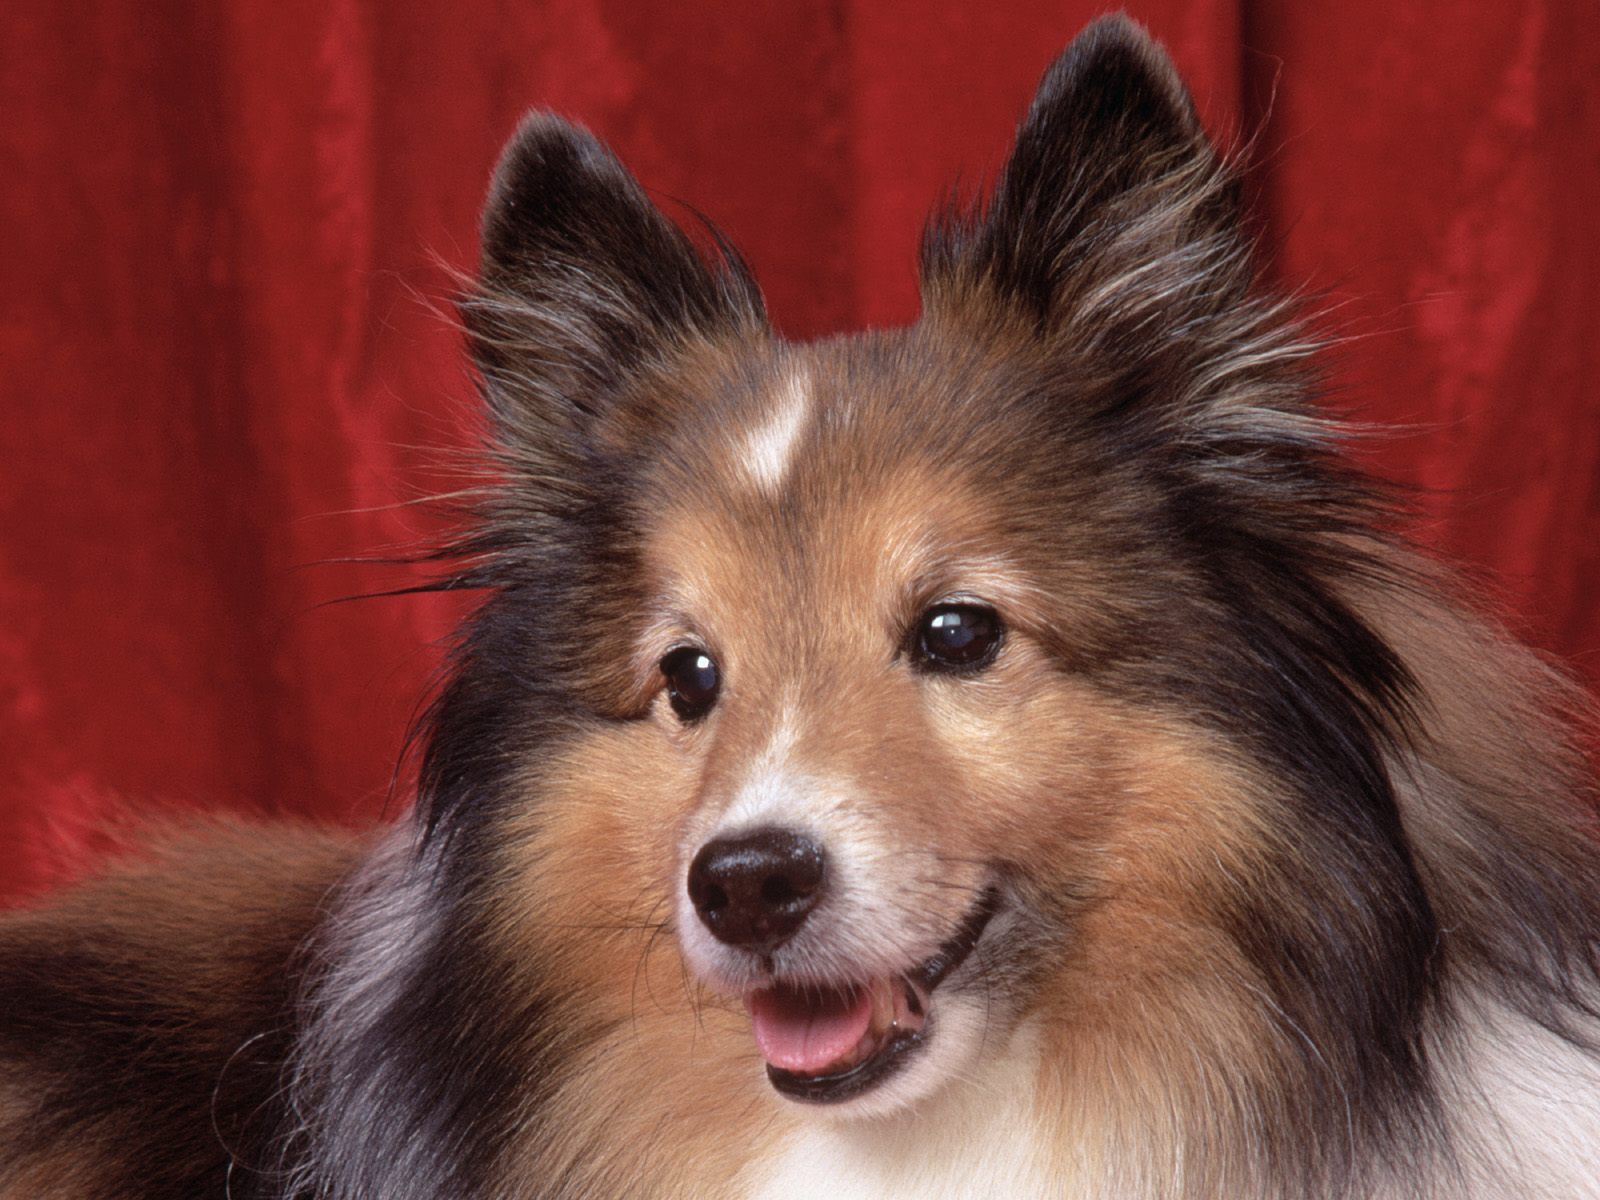 Cute Puppy Dogs: Shetland Sheepdog Puppies